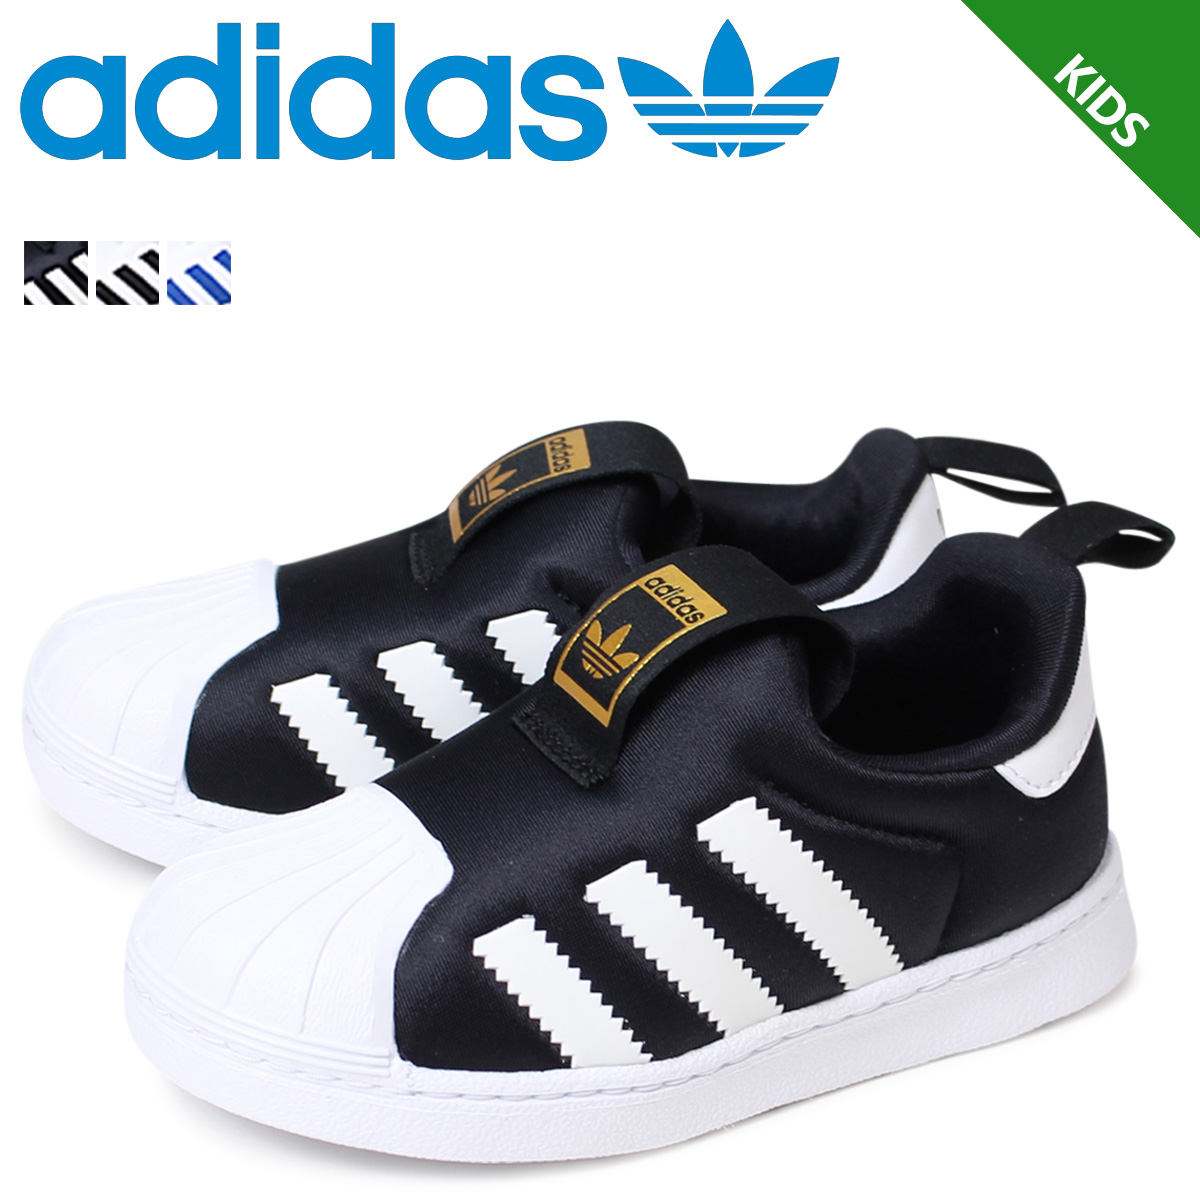 Adidas shoes coupons in store